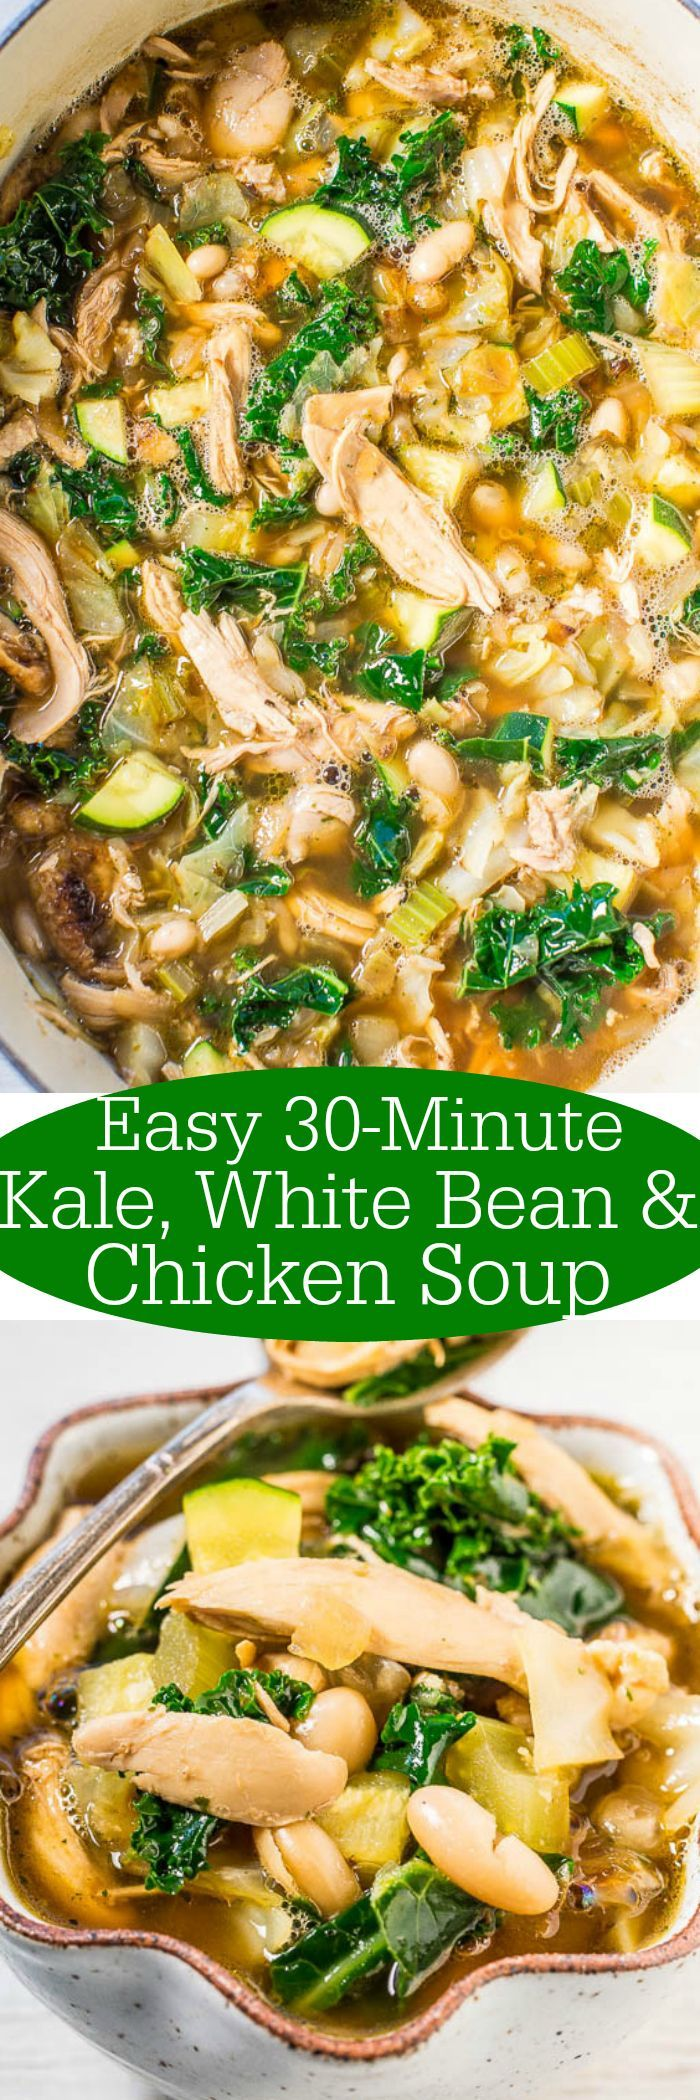 Easy 30-Minute Kale, White Bean, and Chicken Soup - Loaded with juicy chicken, healthy kale, and tender beans! Easy, hearty, and satisfying!